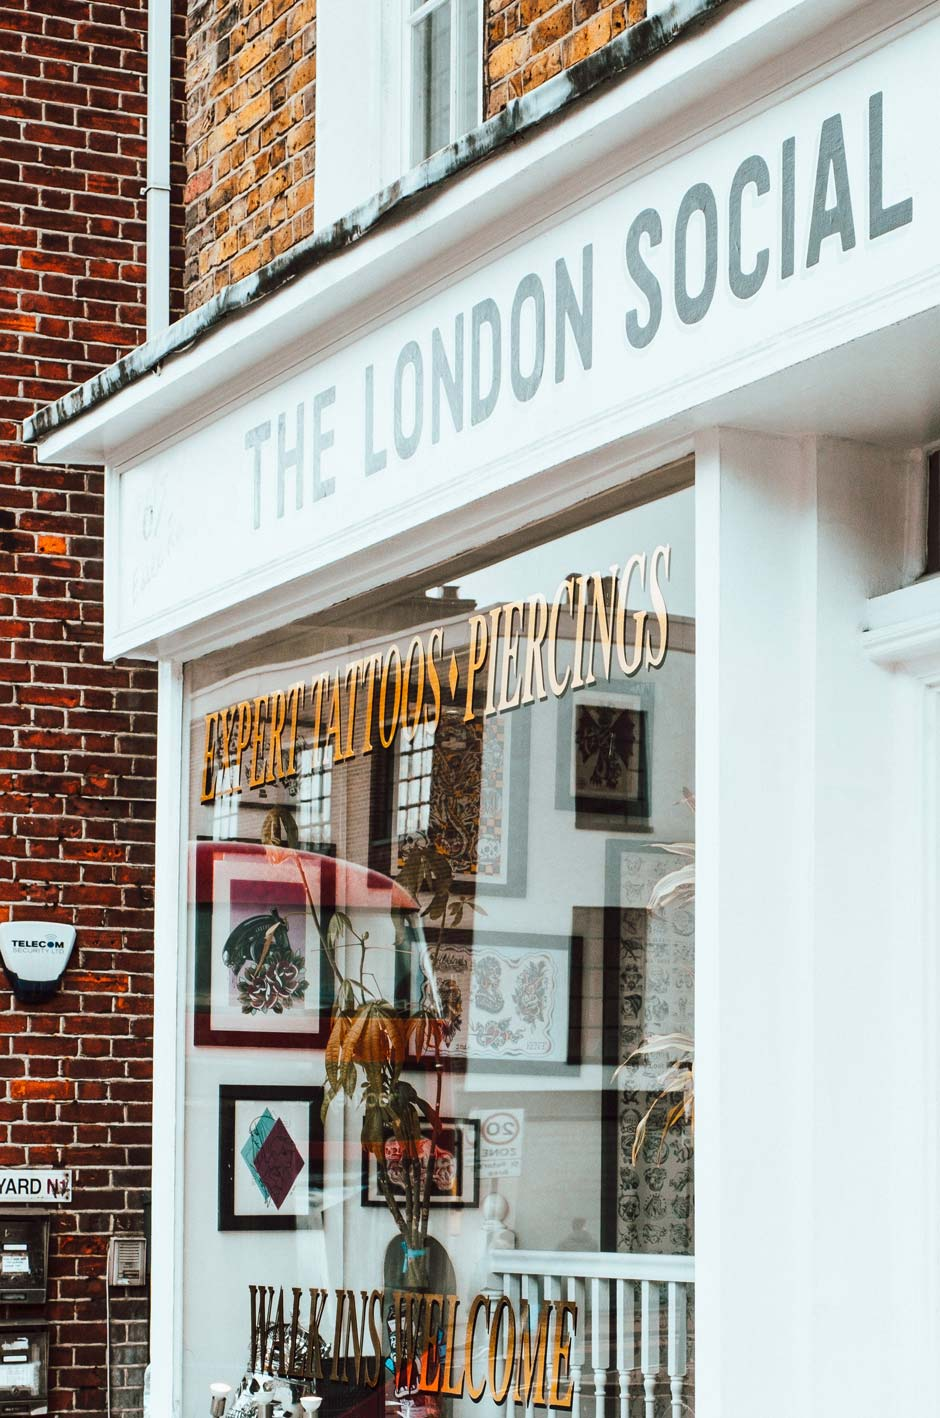 The London Social Traditional Tattoo Shop